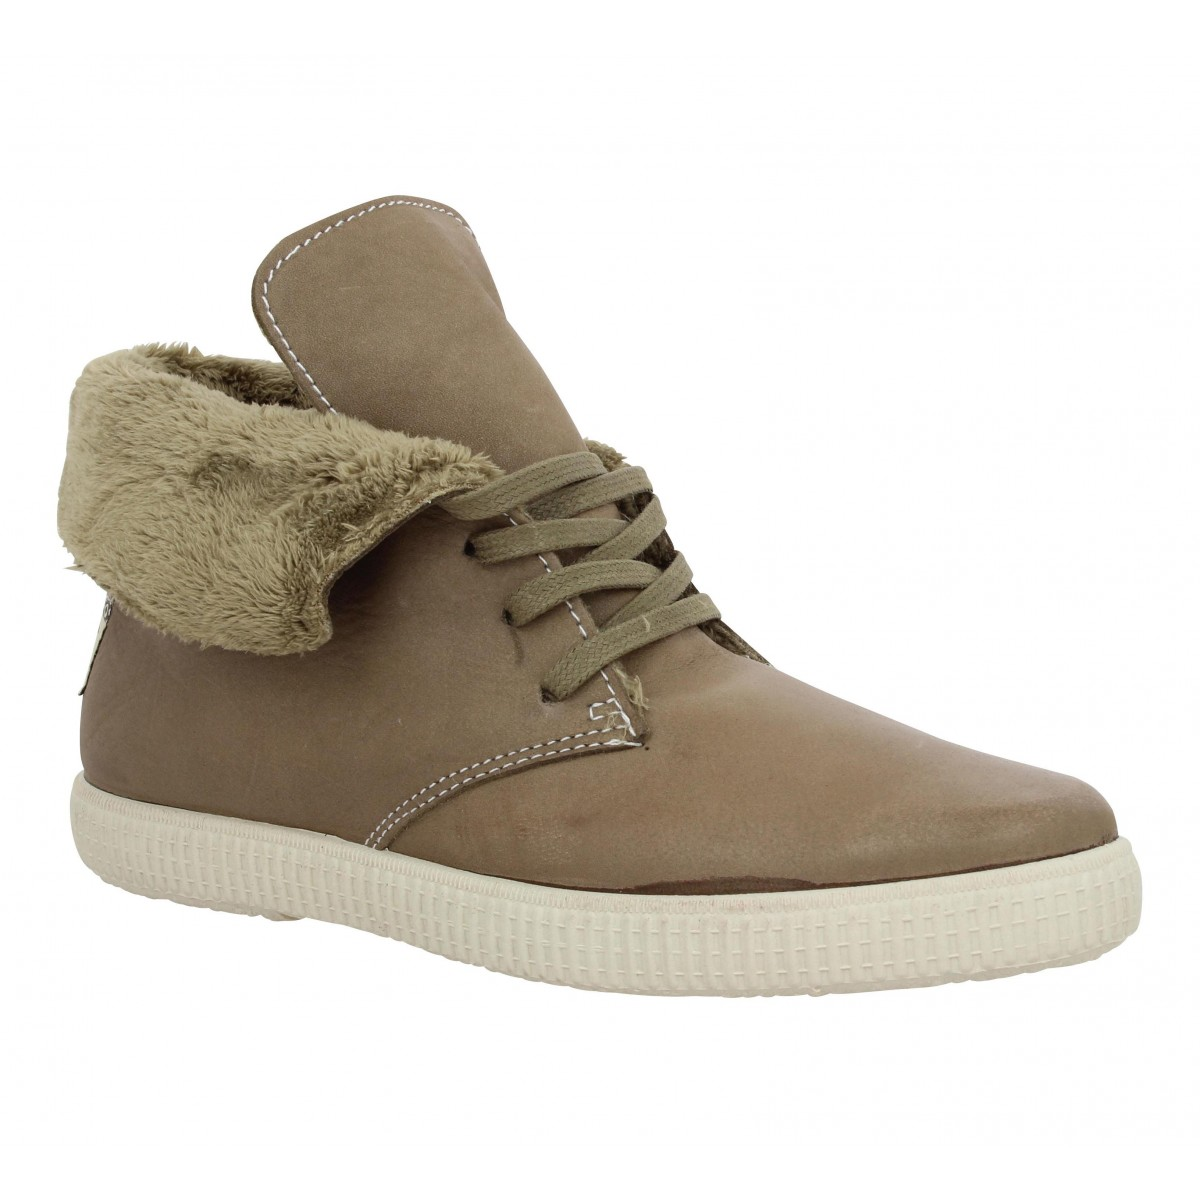 Baskets VICTORIA 6786 cuir Femme Taupe